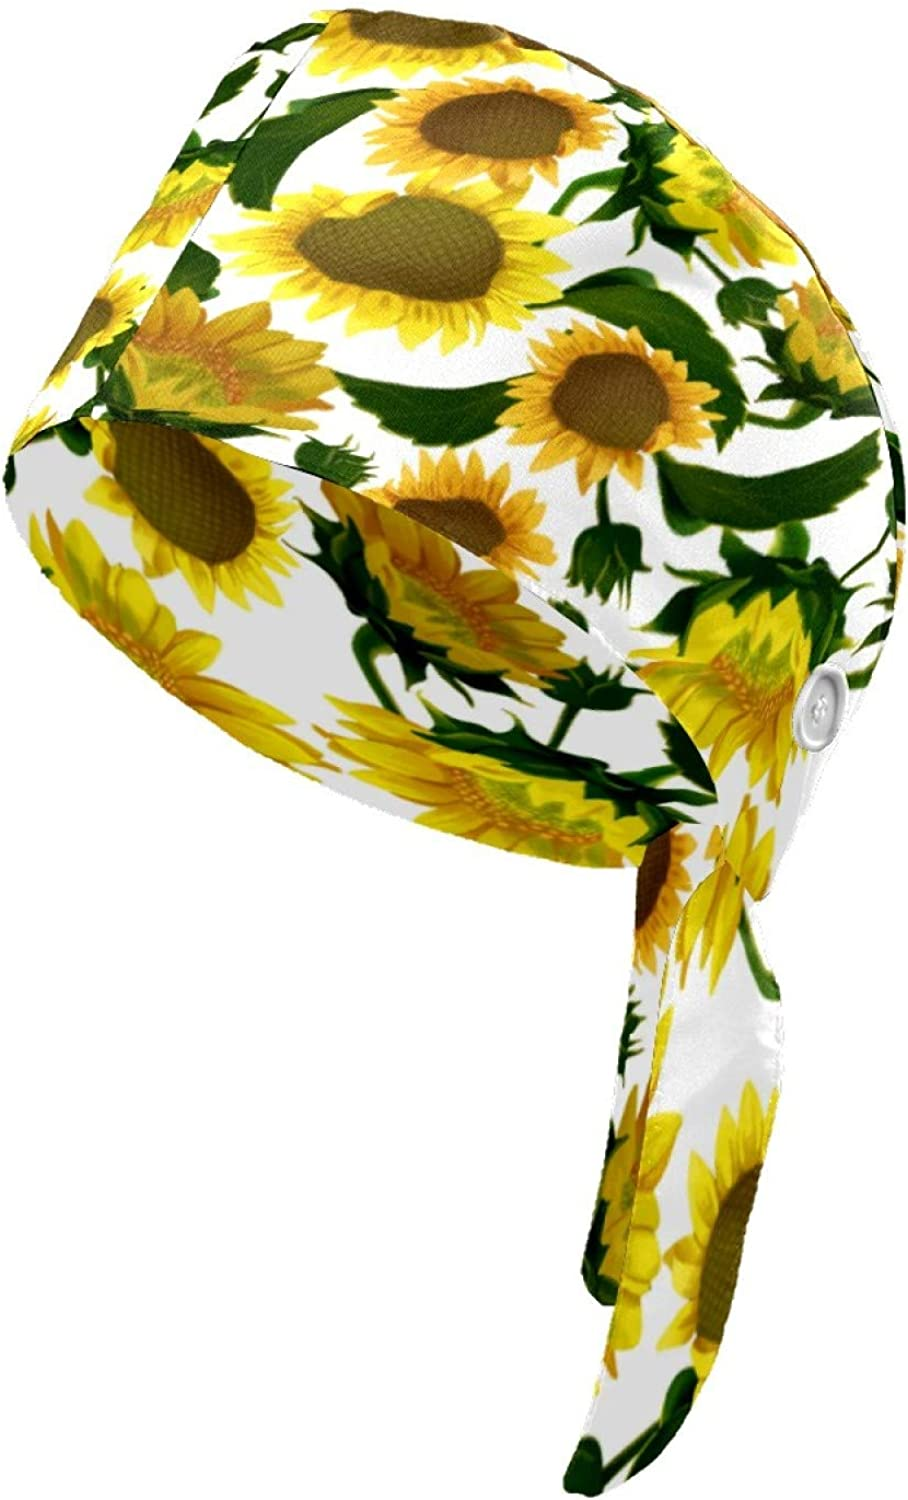 Working Cap with Button for Women Men Adjustable Sunflowers Caps One Size Tie Back Hats